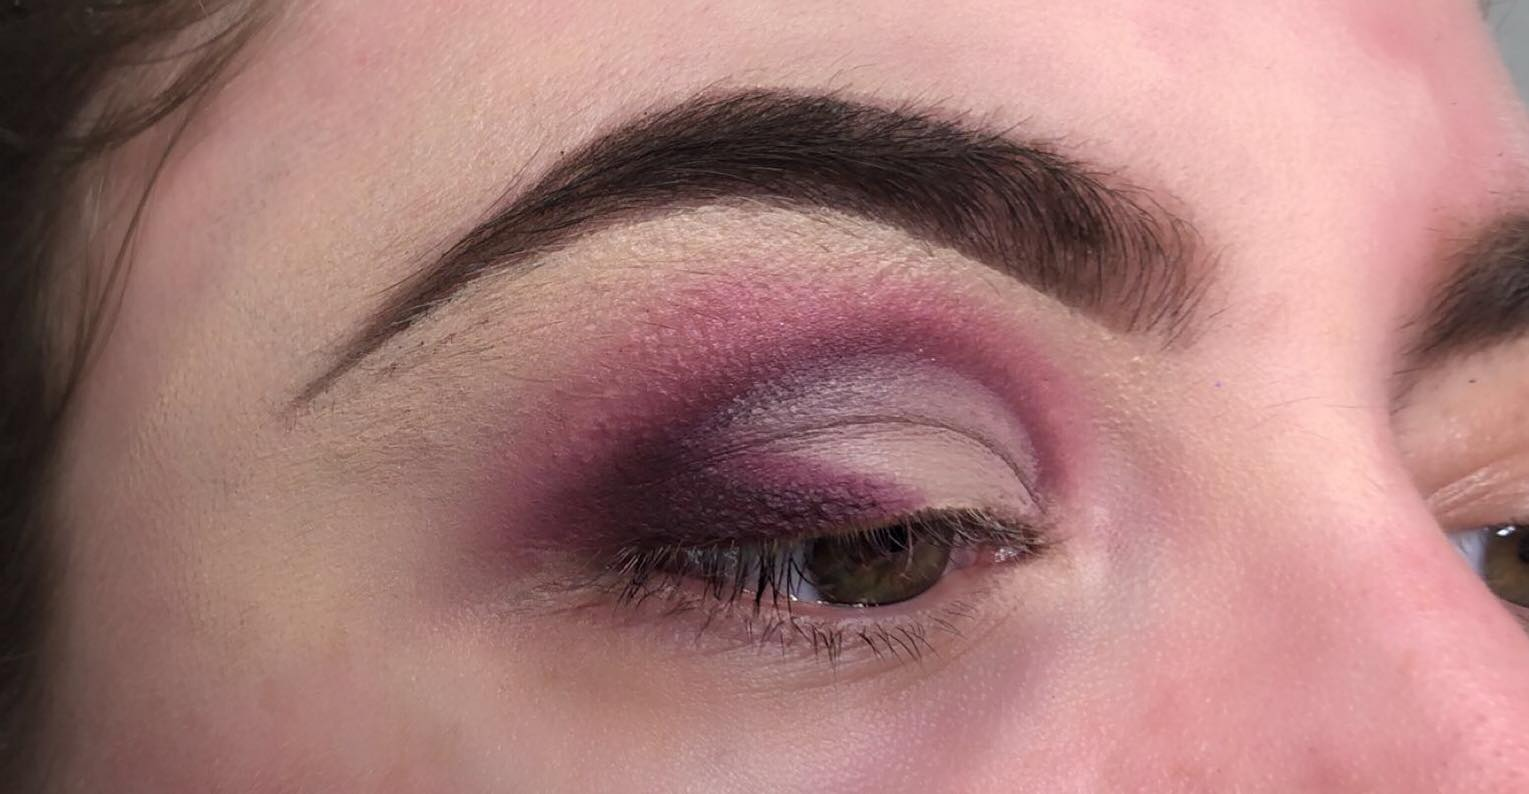 Sparkly Cut Crease Makeup Tutorial - Step 6 - Packing with a Lighter Purple